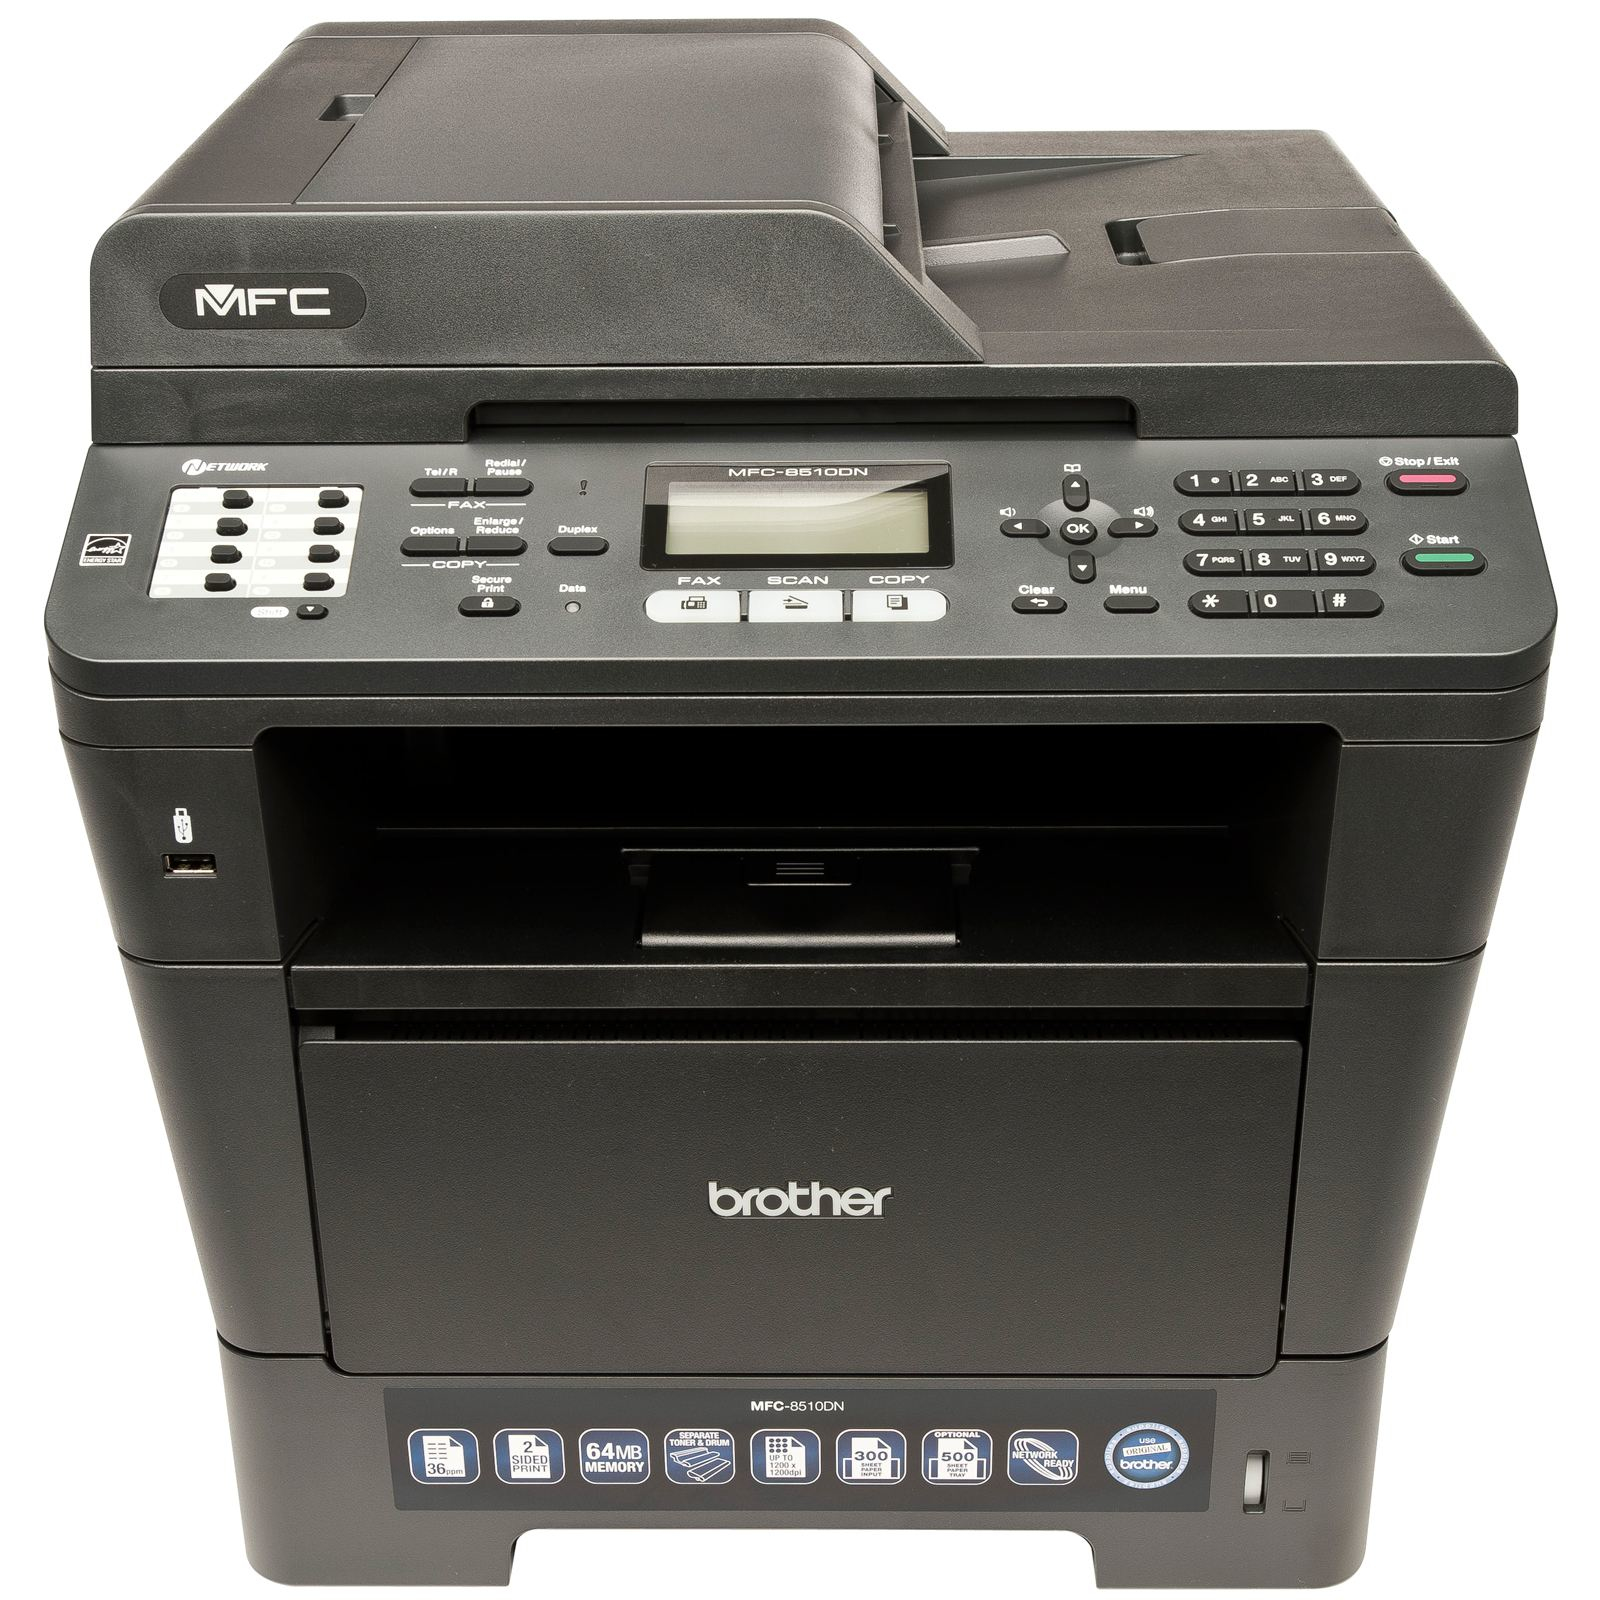 MFC8510DNZU1 Brother MFC-8510DN MFC 8510 A4 Mono Multifunction Laser Printer - Refurbished with 3 months RTB warranty